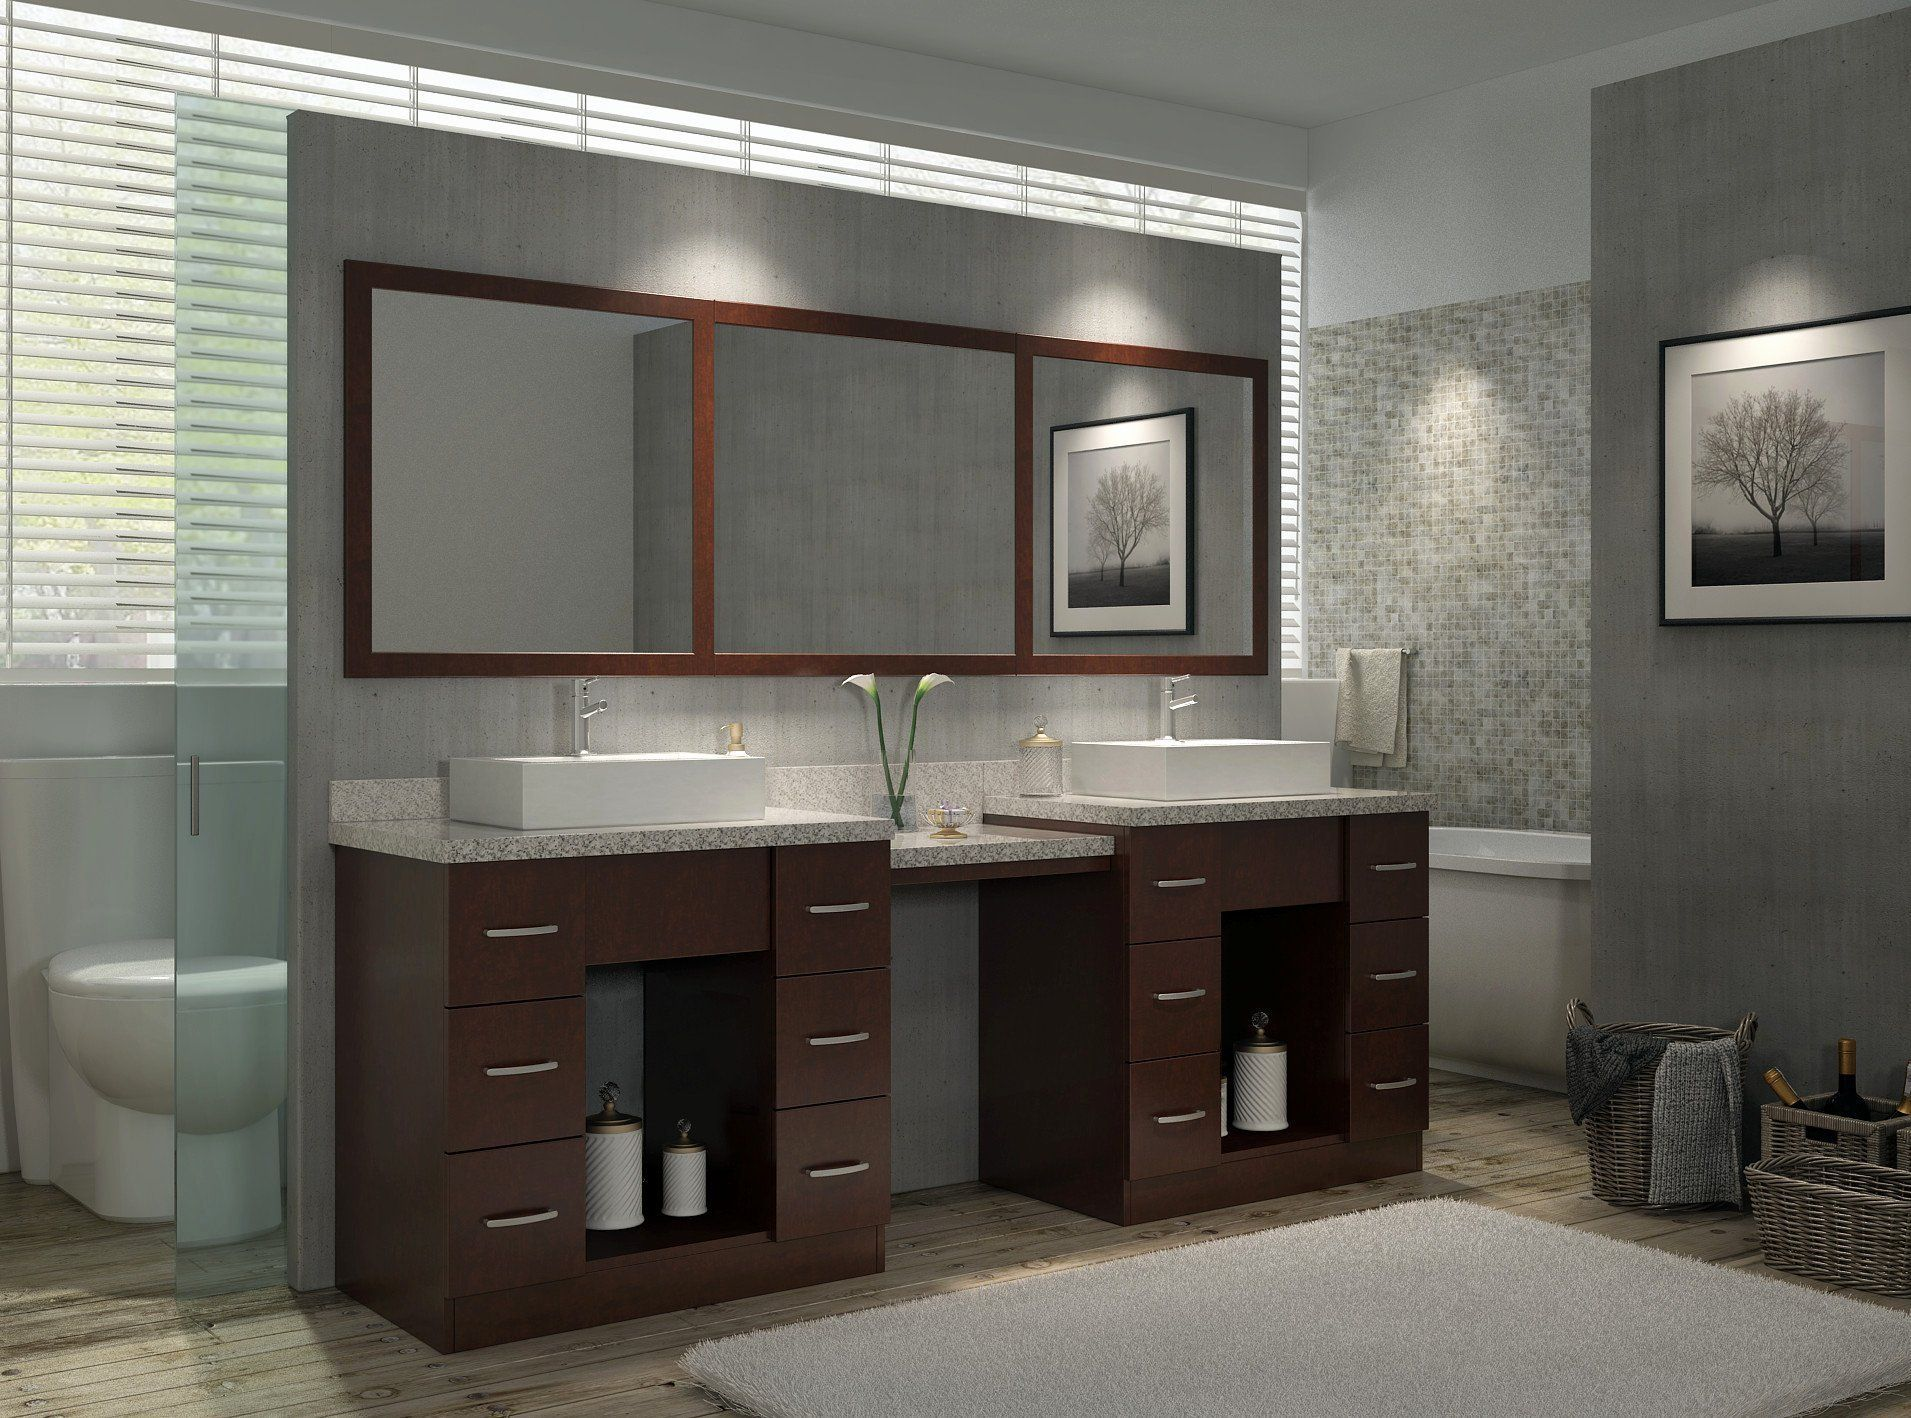 24 Double Sink Bathroom Ideas In 2020 With Images Double